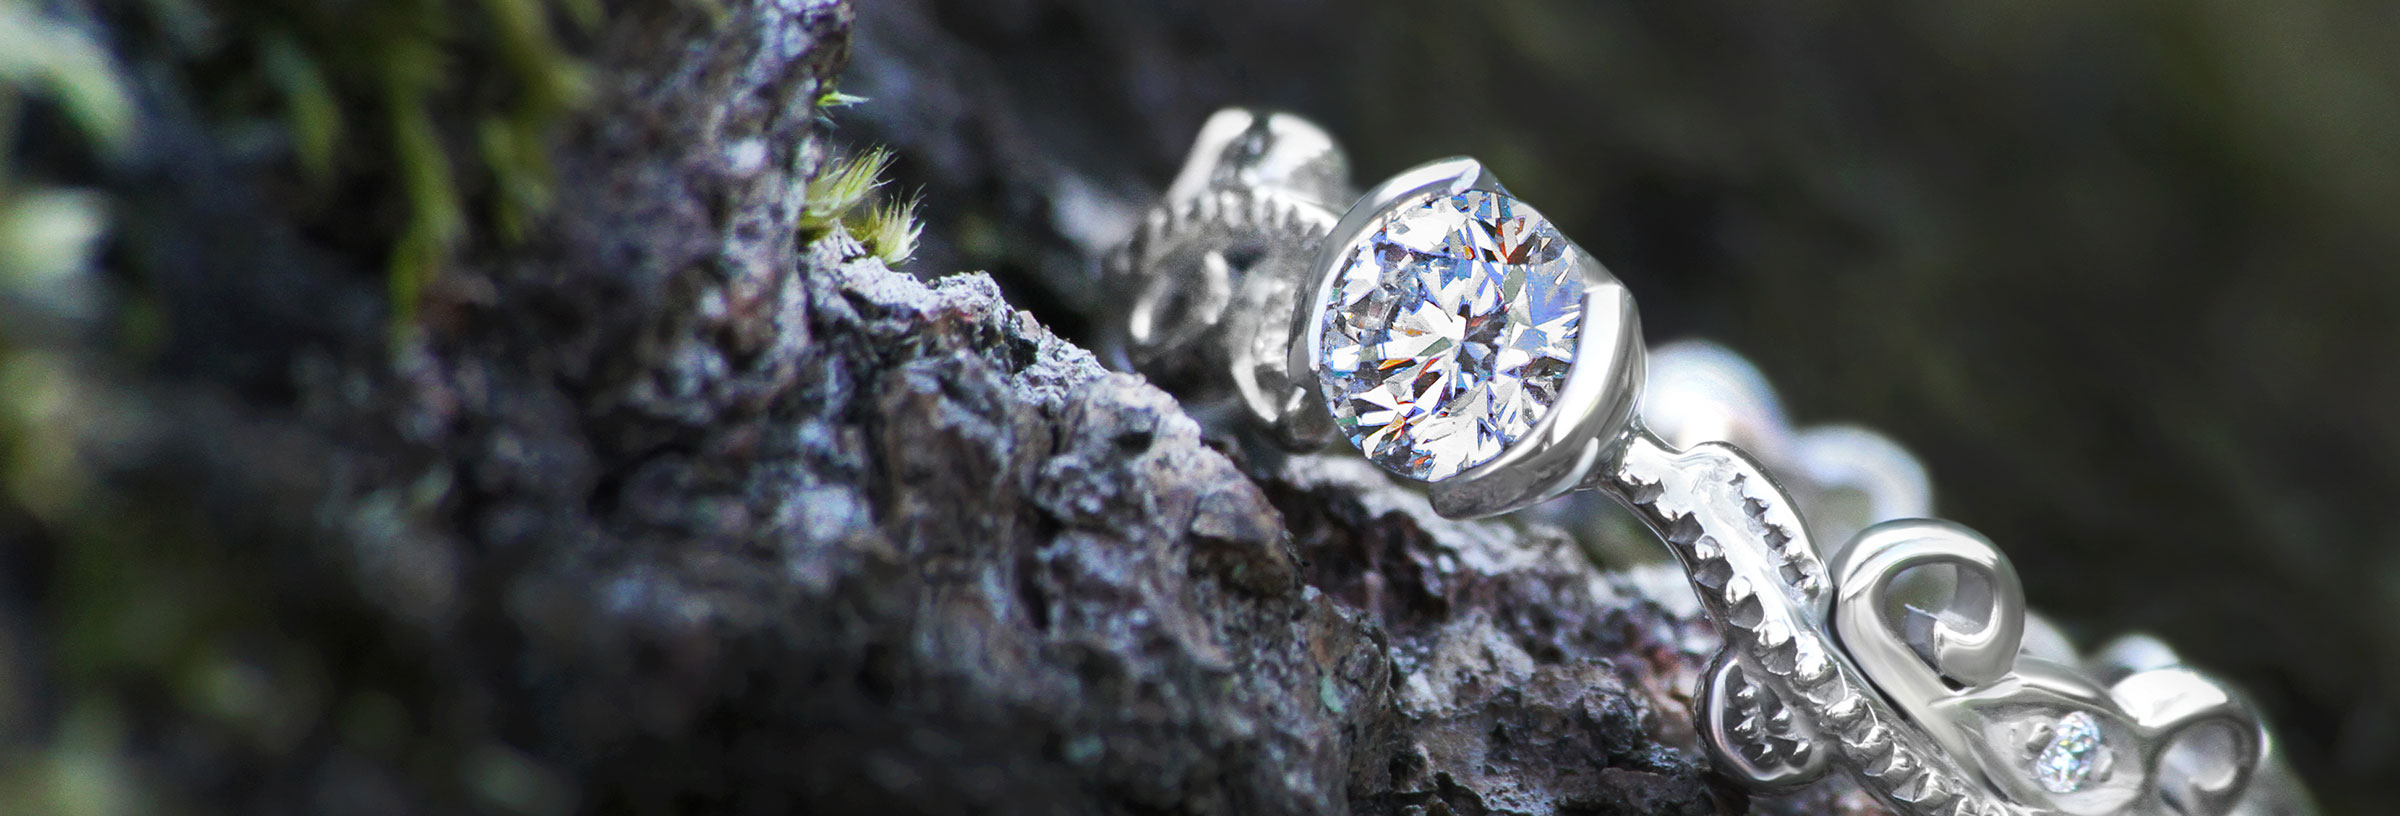 Vine inspired engagement ring with a stunning diamond